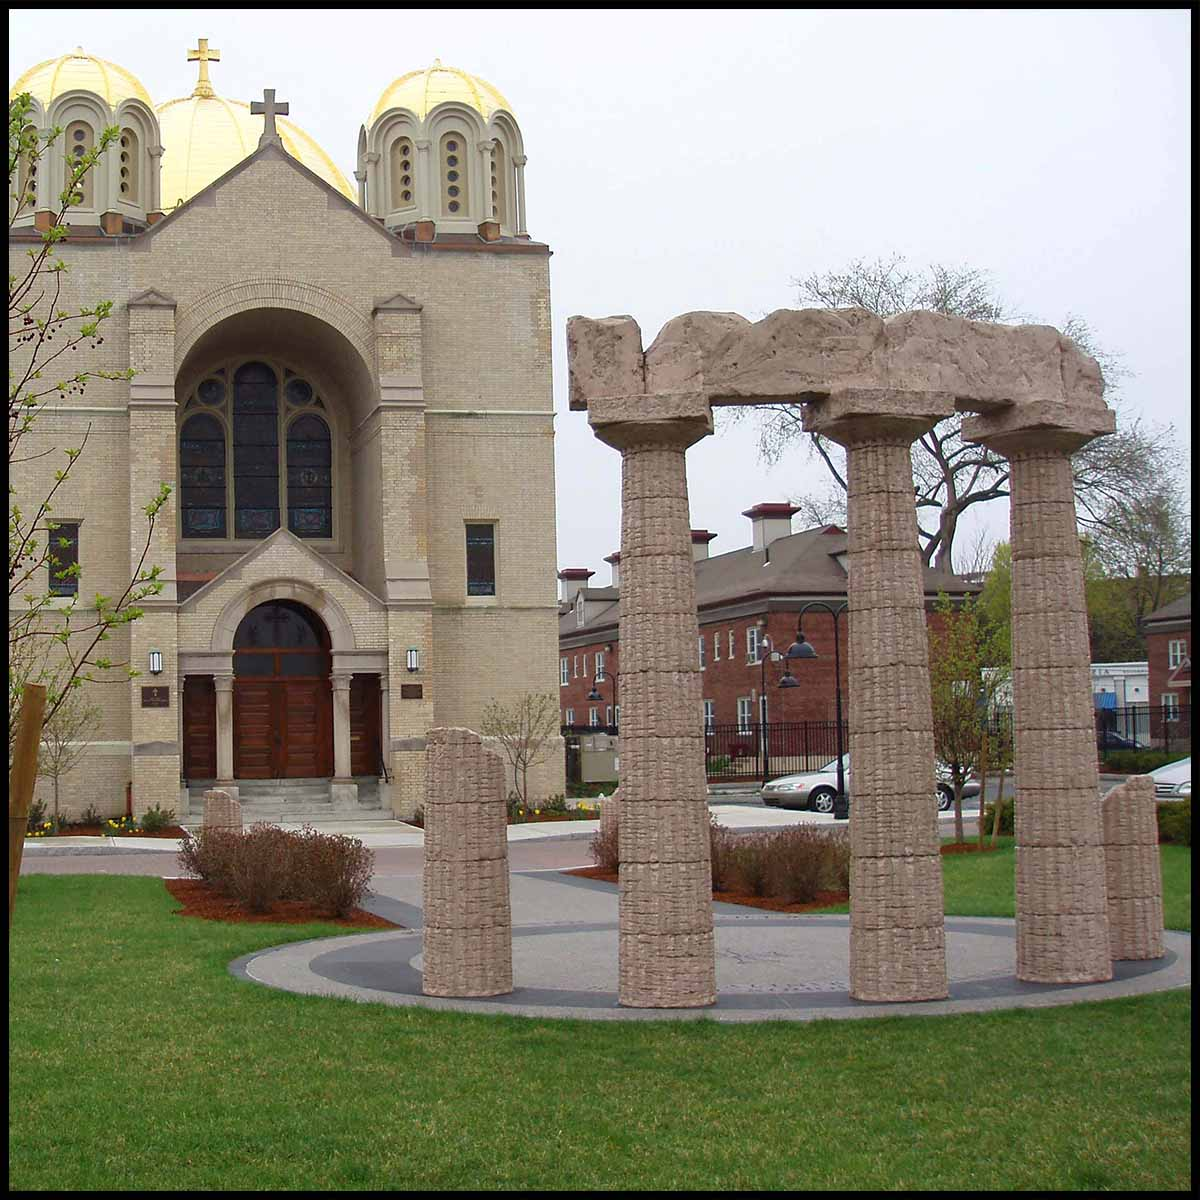 photo of church grounds with sculpture of ancient Greek temple ruins in front of stone church with gold domes